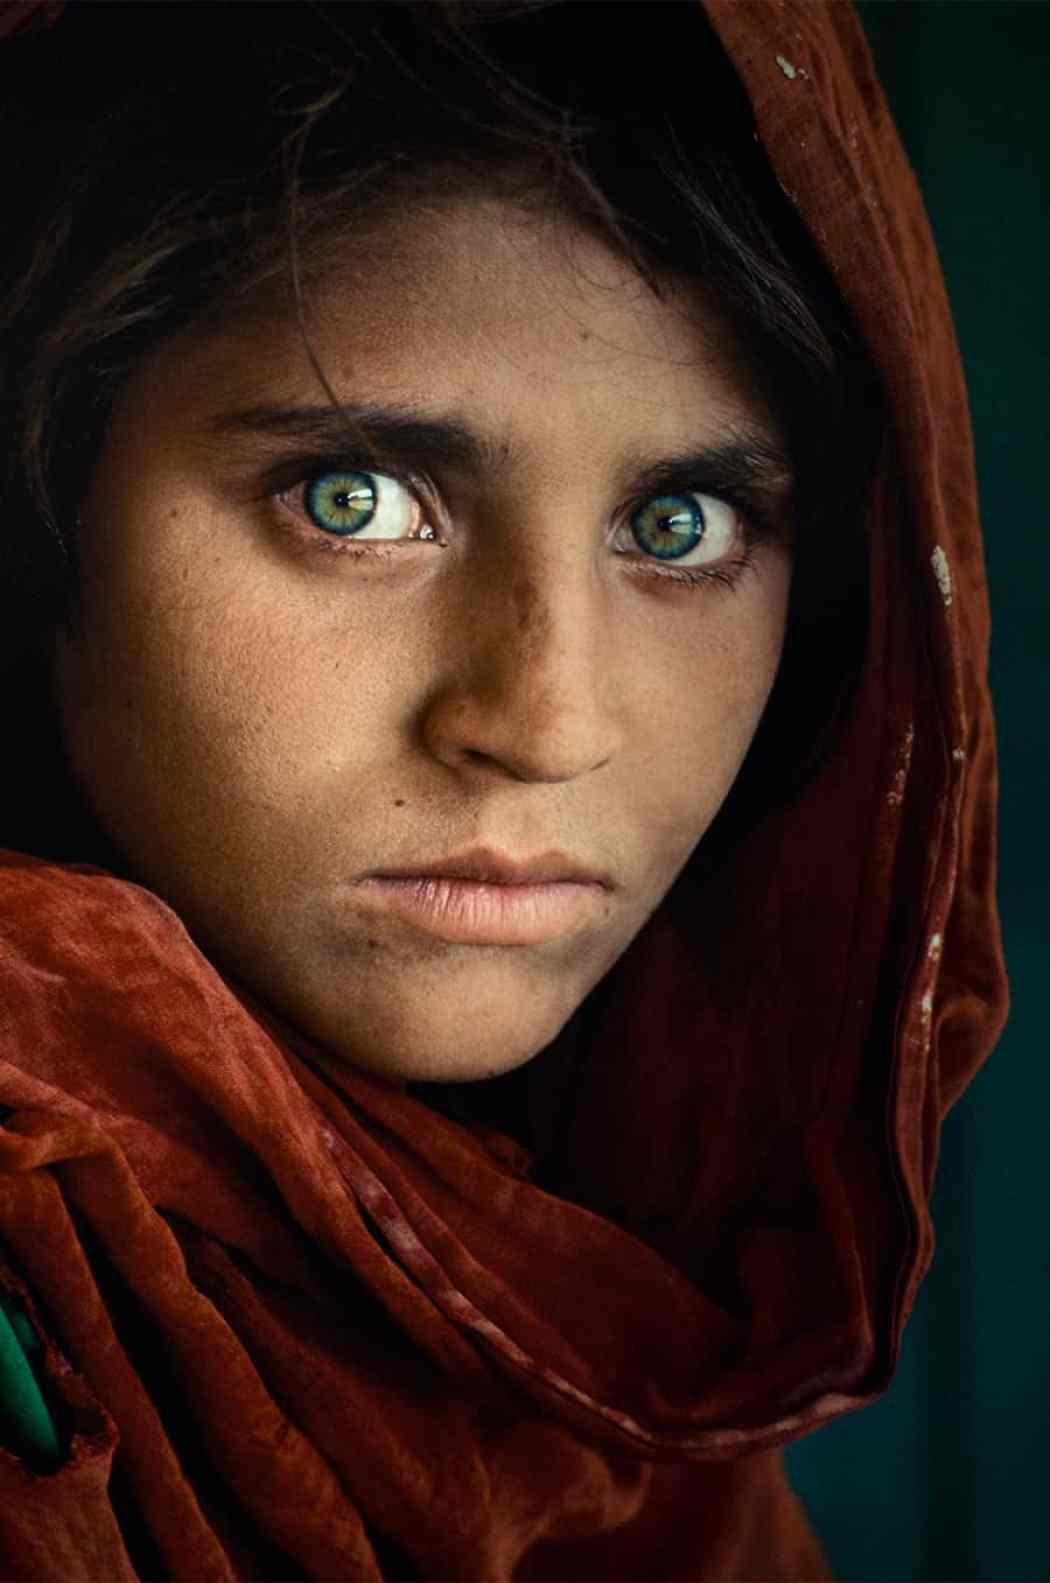 McCurry Ragazza Afghana